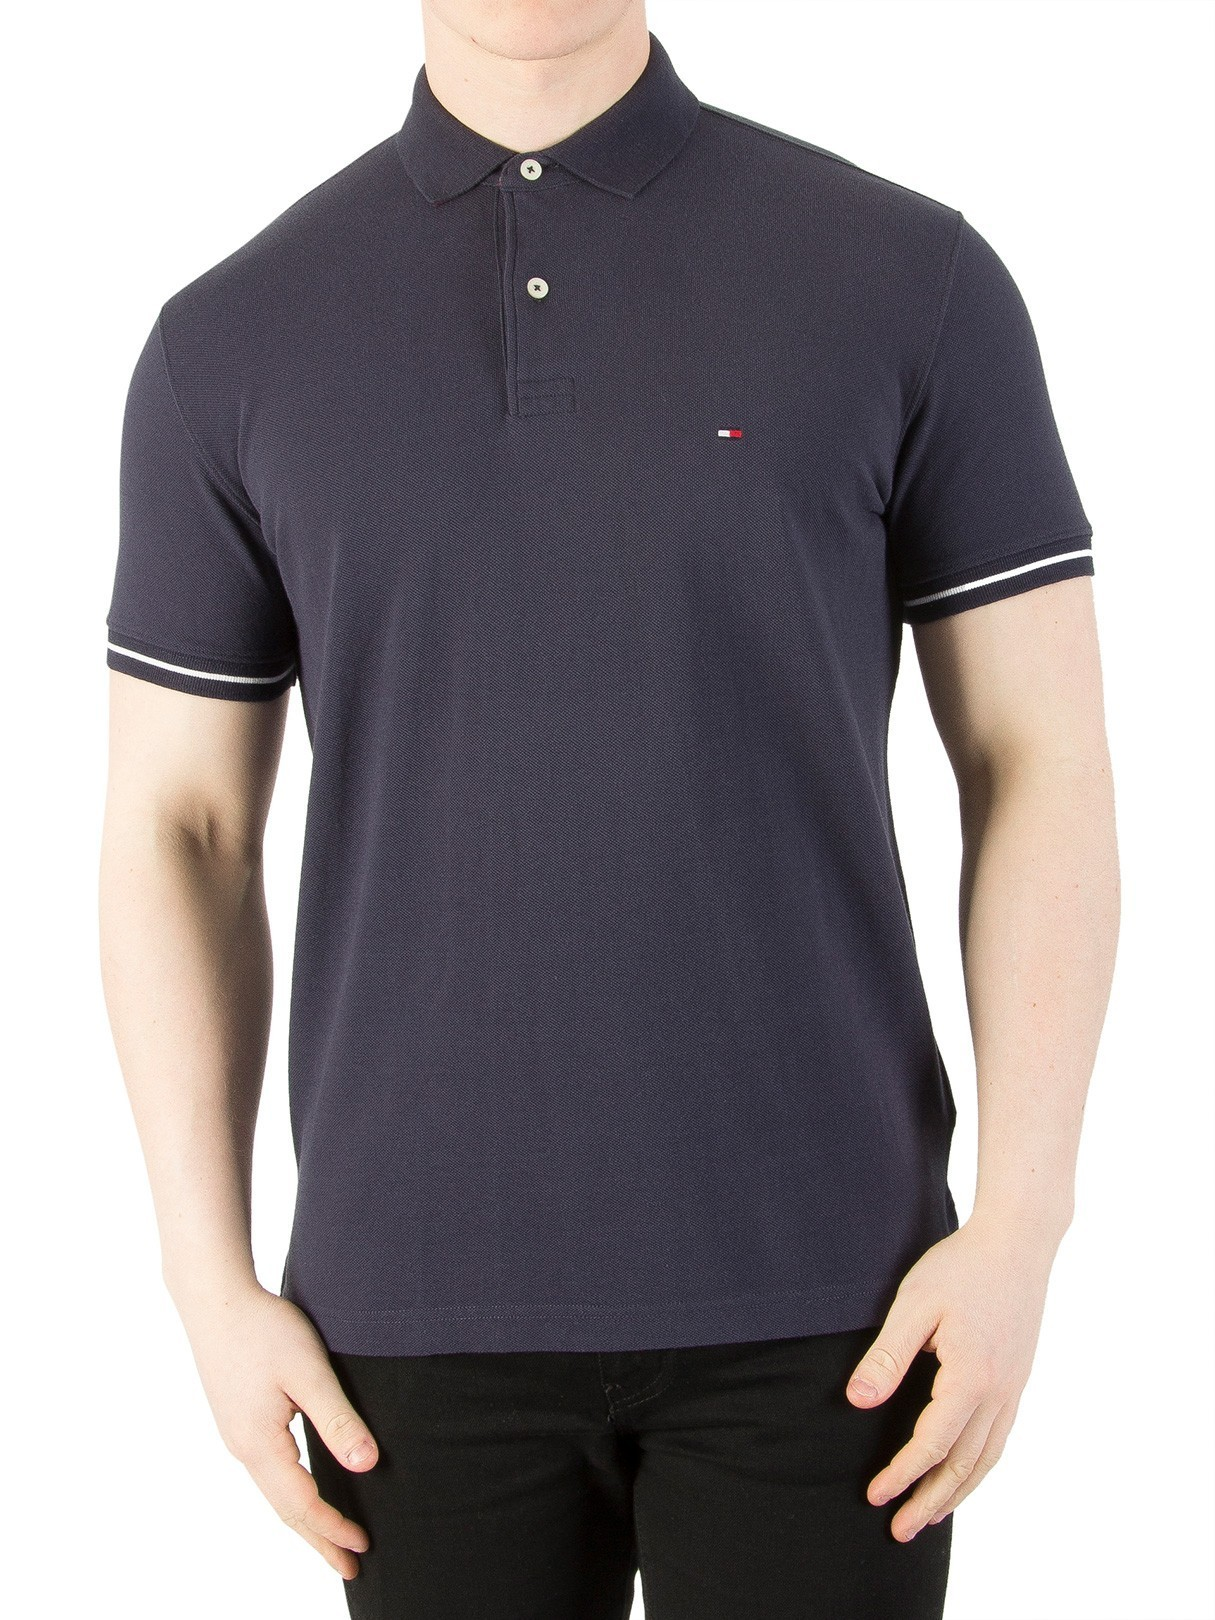 93eb2f7ff Tommy Hilfiger Sky Captain 1985 Regular Fit Polo Shirt | Standout